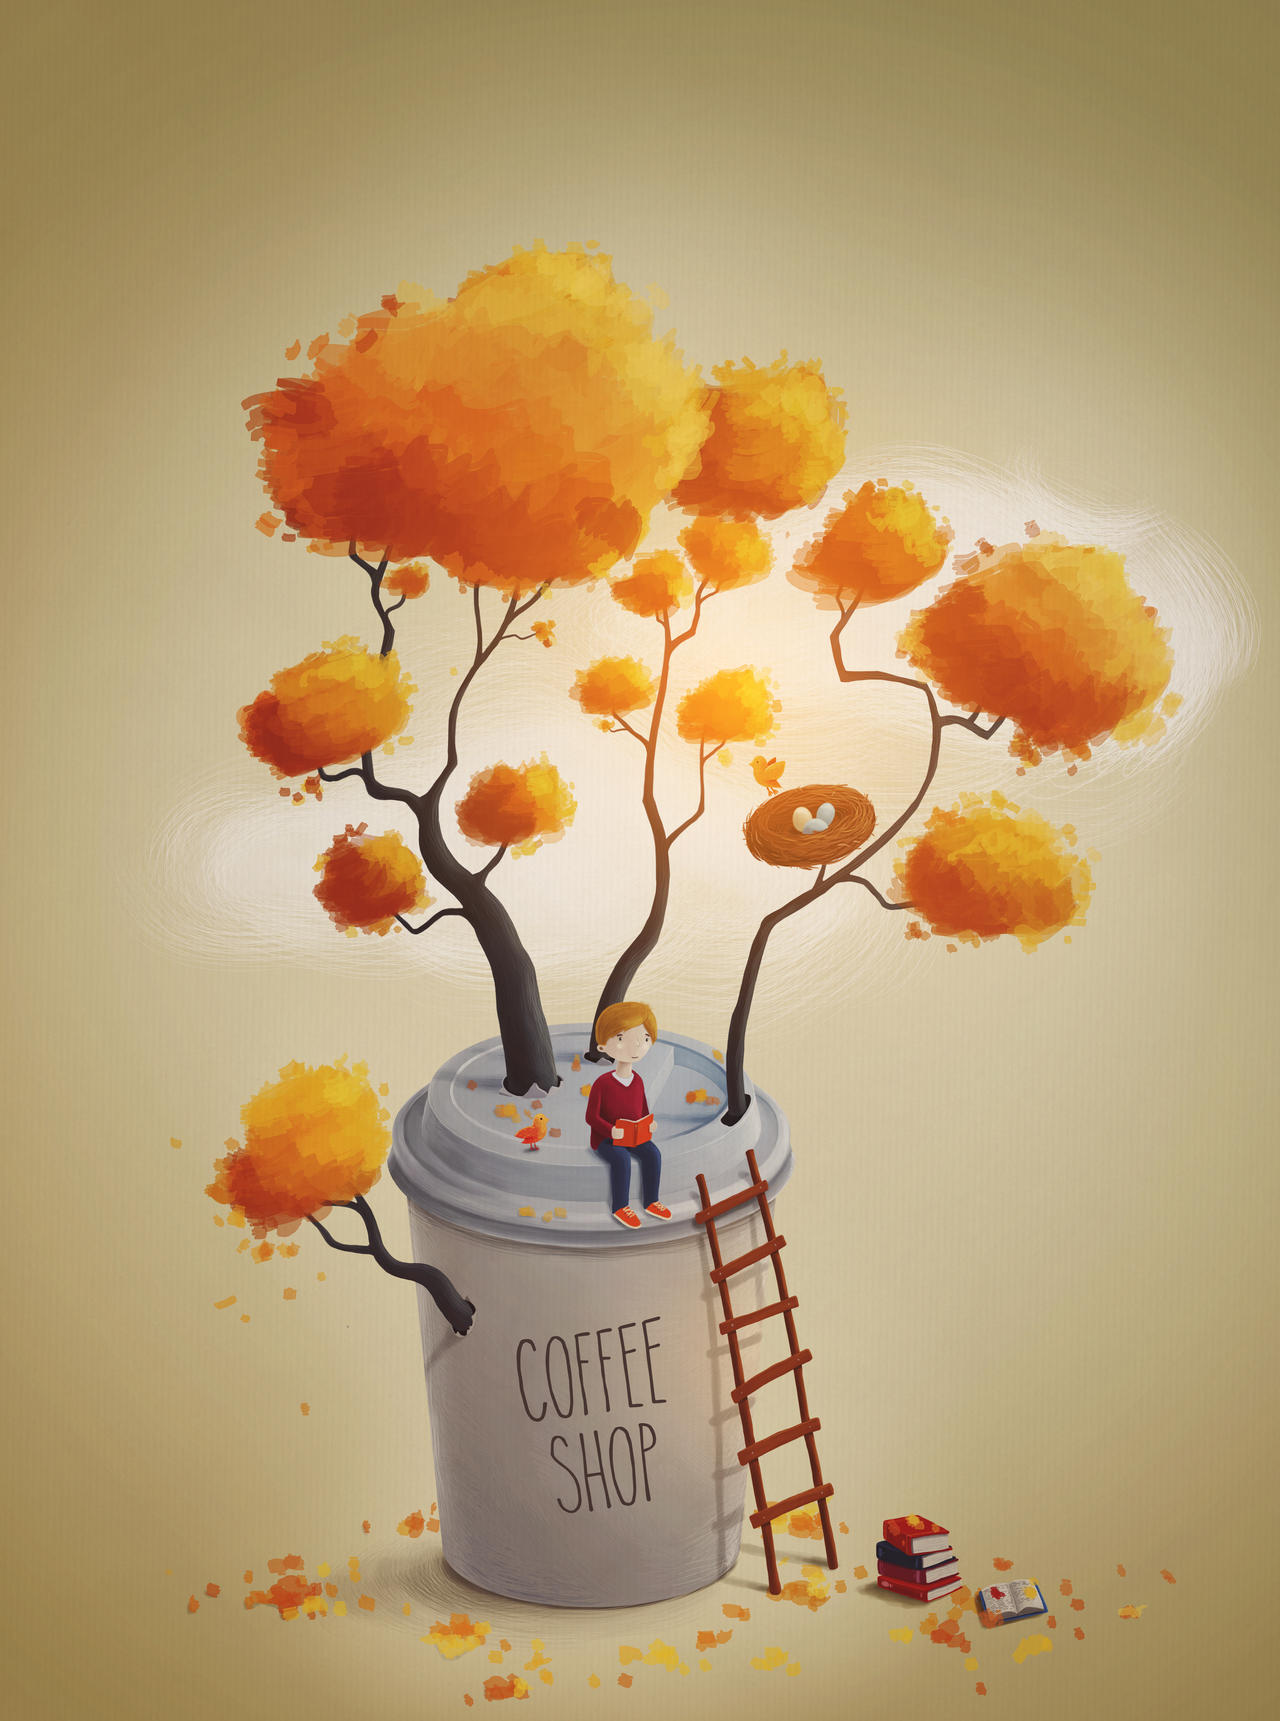 Coffee Shop Tree by Eredel